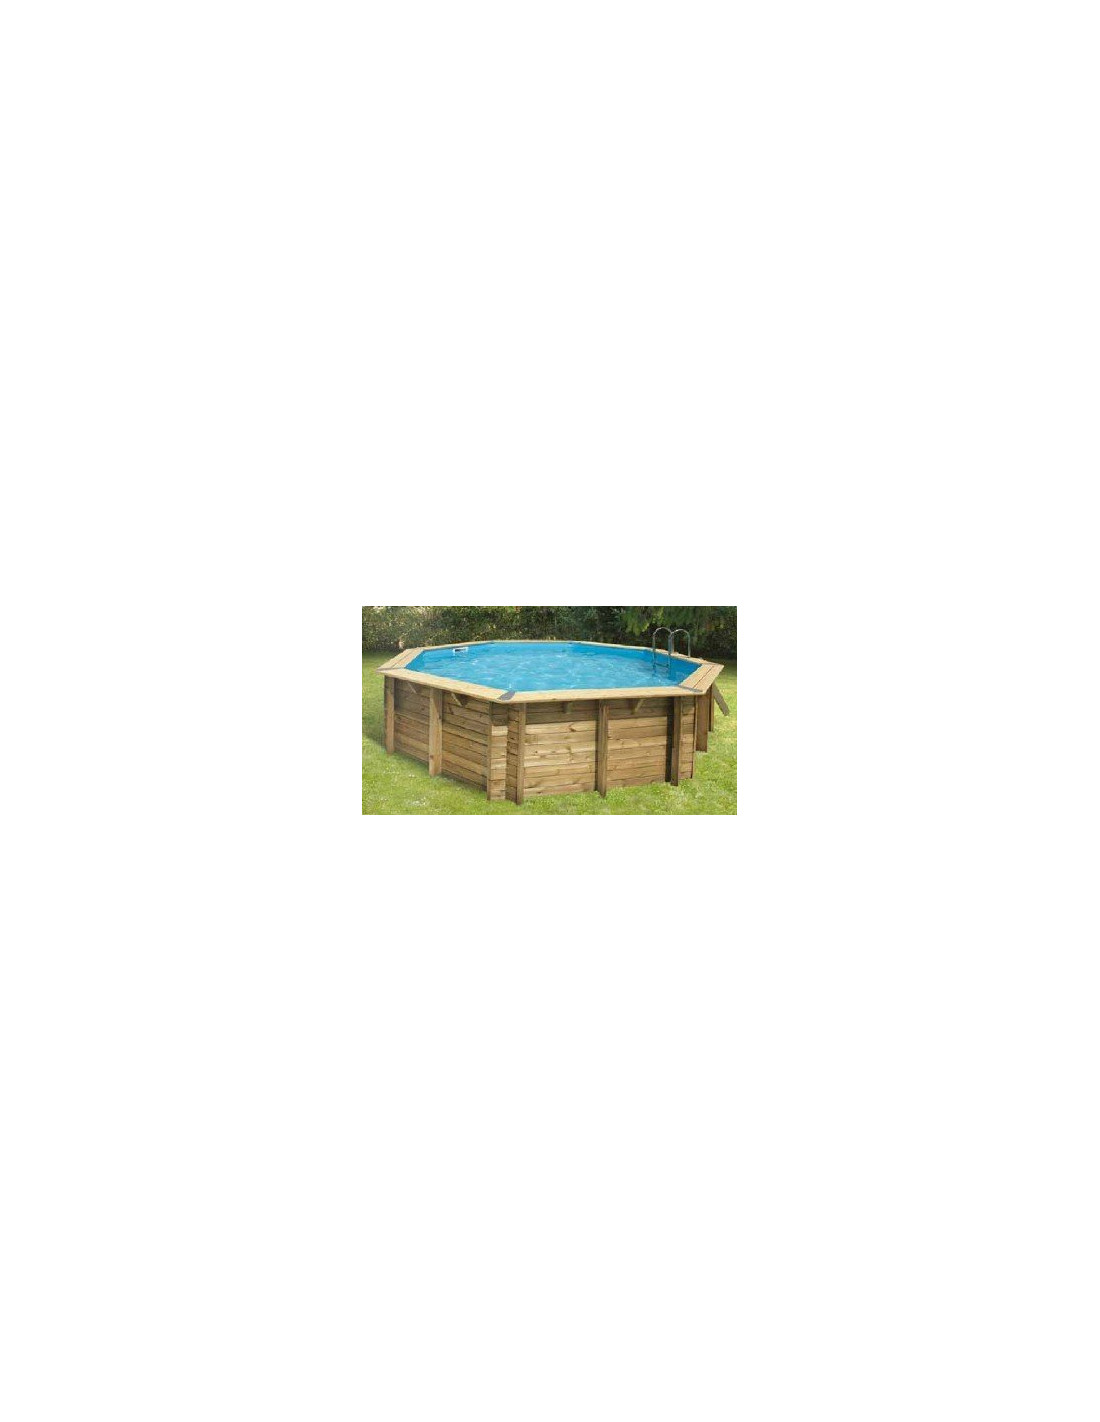 Piscine oc a 430 430 x h 120 cm ubbink for Commander liner piscine